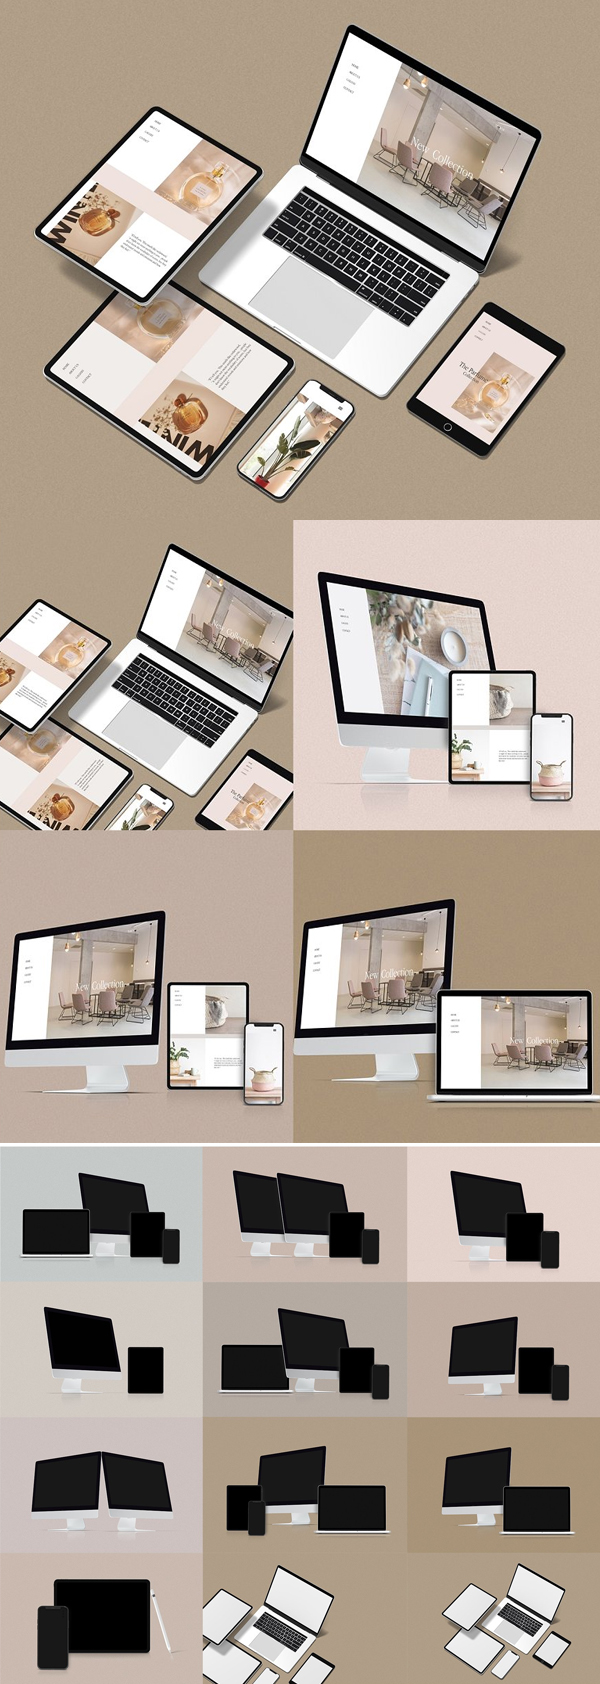 Awesome Multi Device Mockup